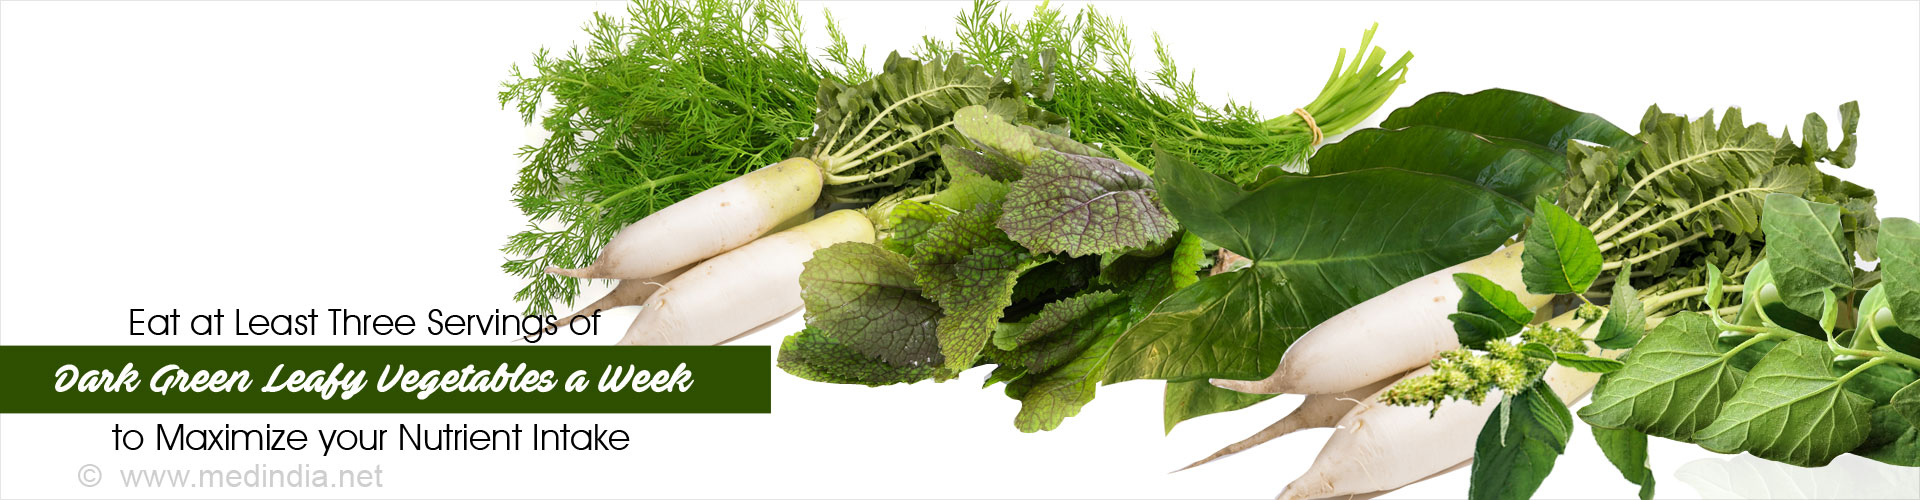 Eat Atleast Three Servings of Dark Green Leafy Vegetables a Week to Maximize Your Nutrient Intake